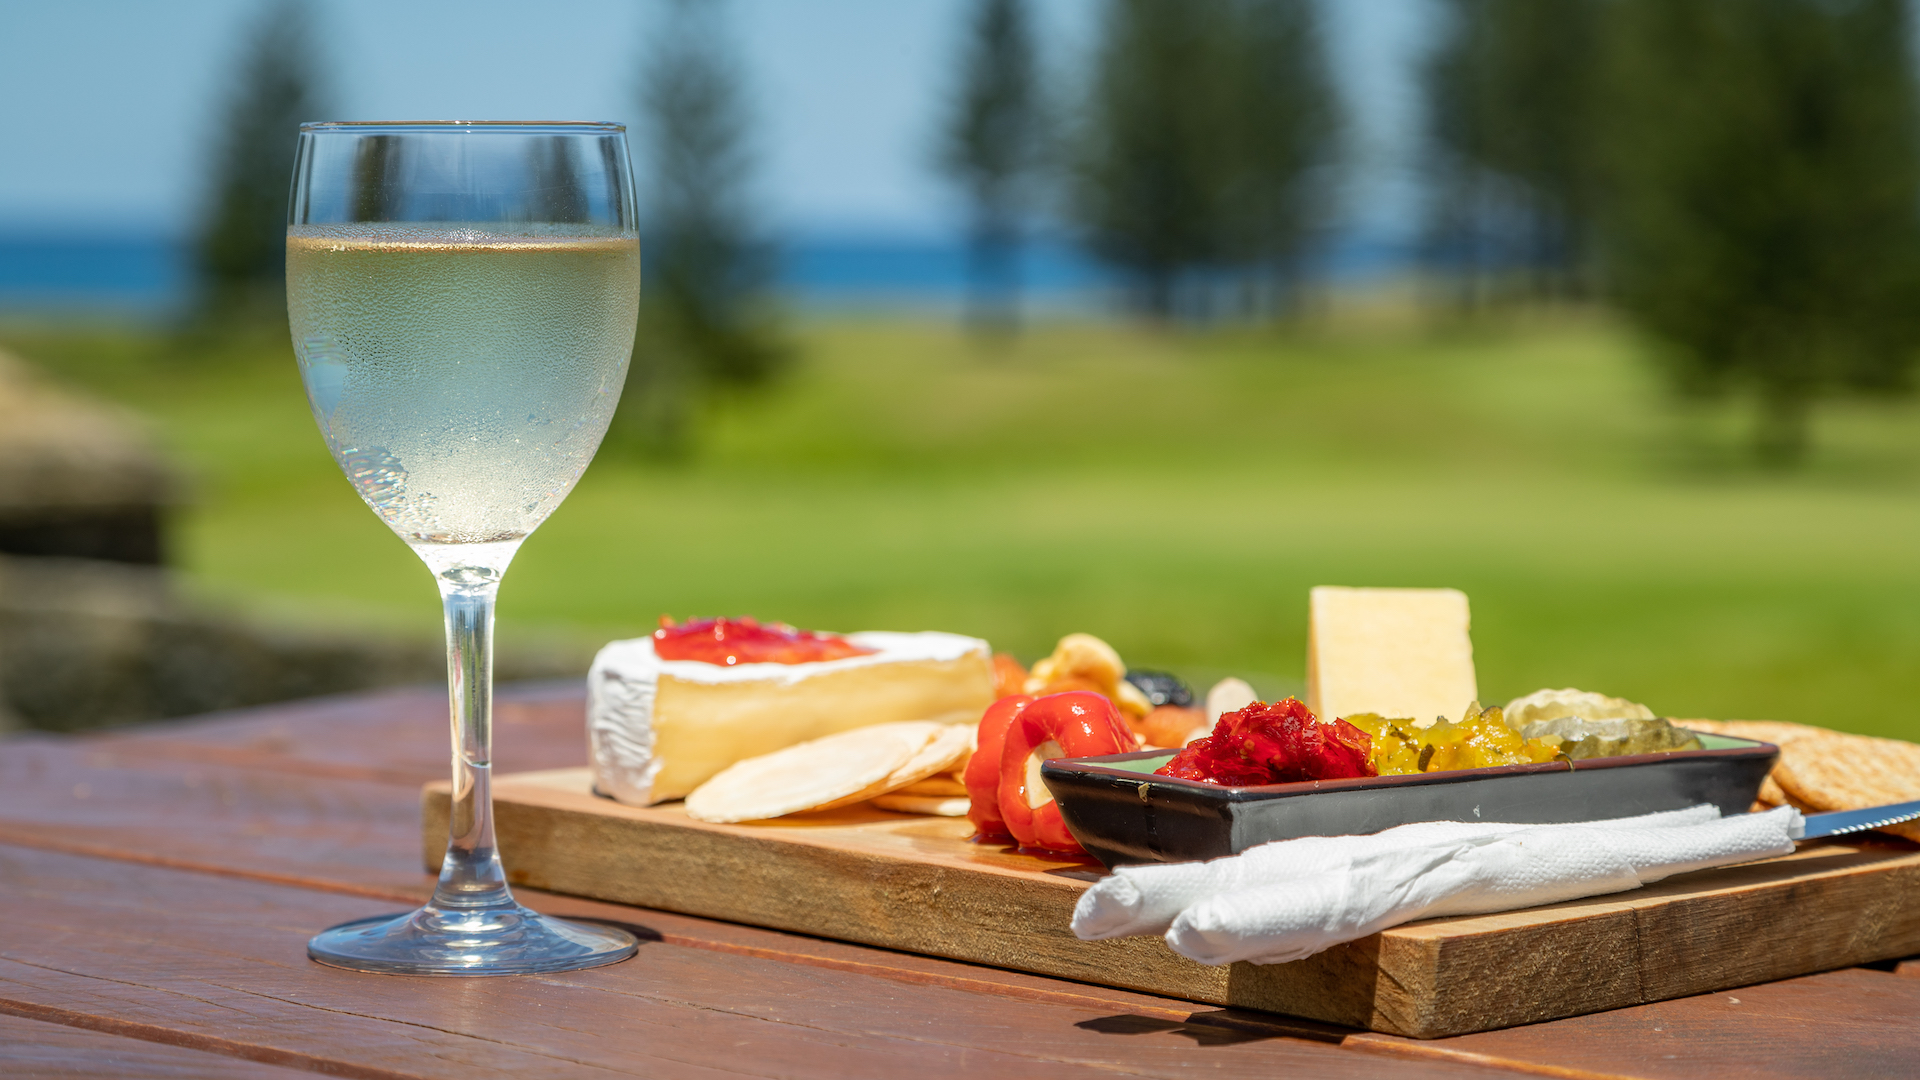 An antipasto platter and a glass of white wine rest on a wooden table on a sunny day with the ocean in the distance.